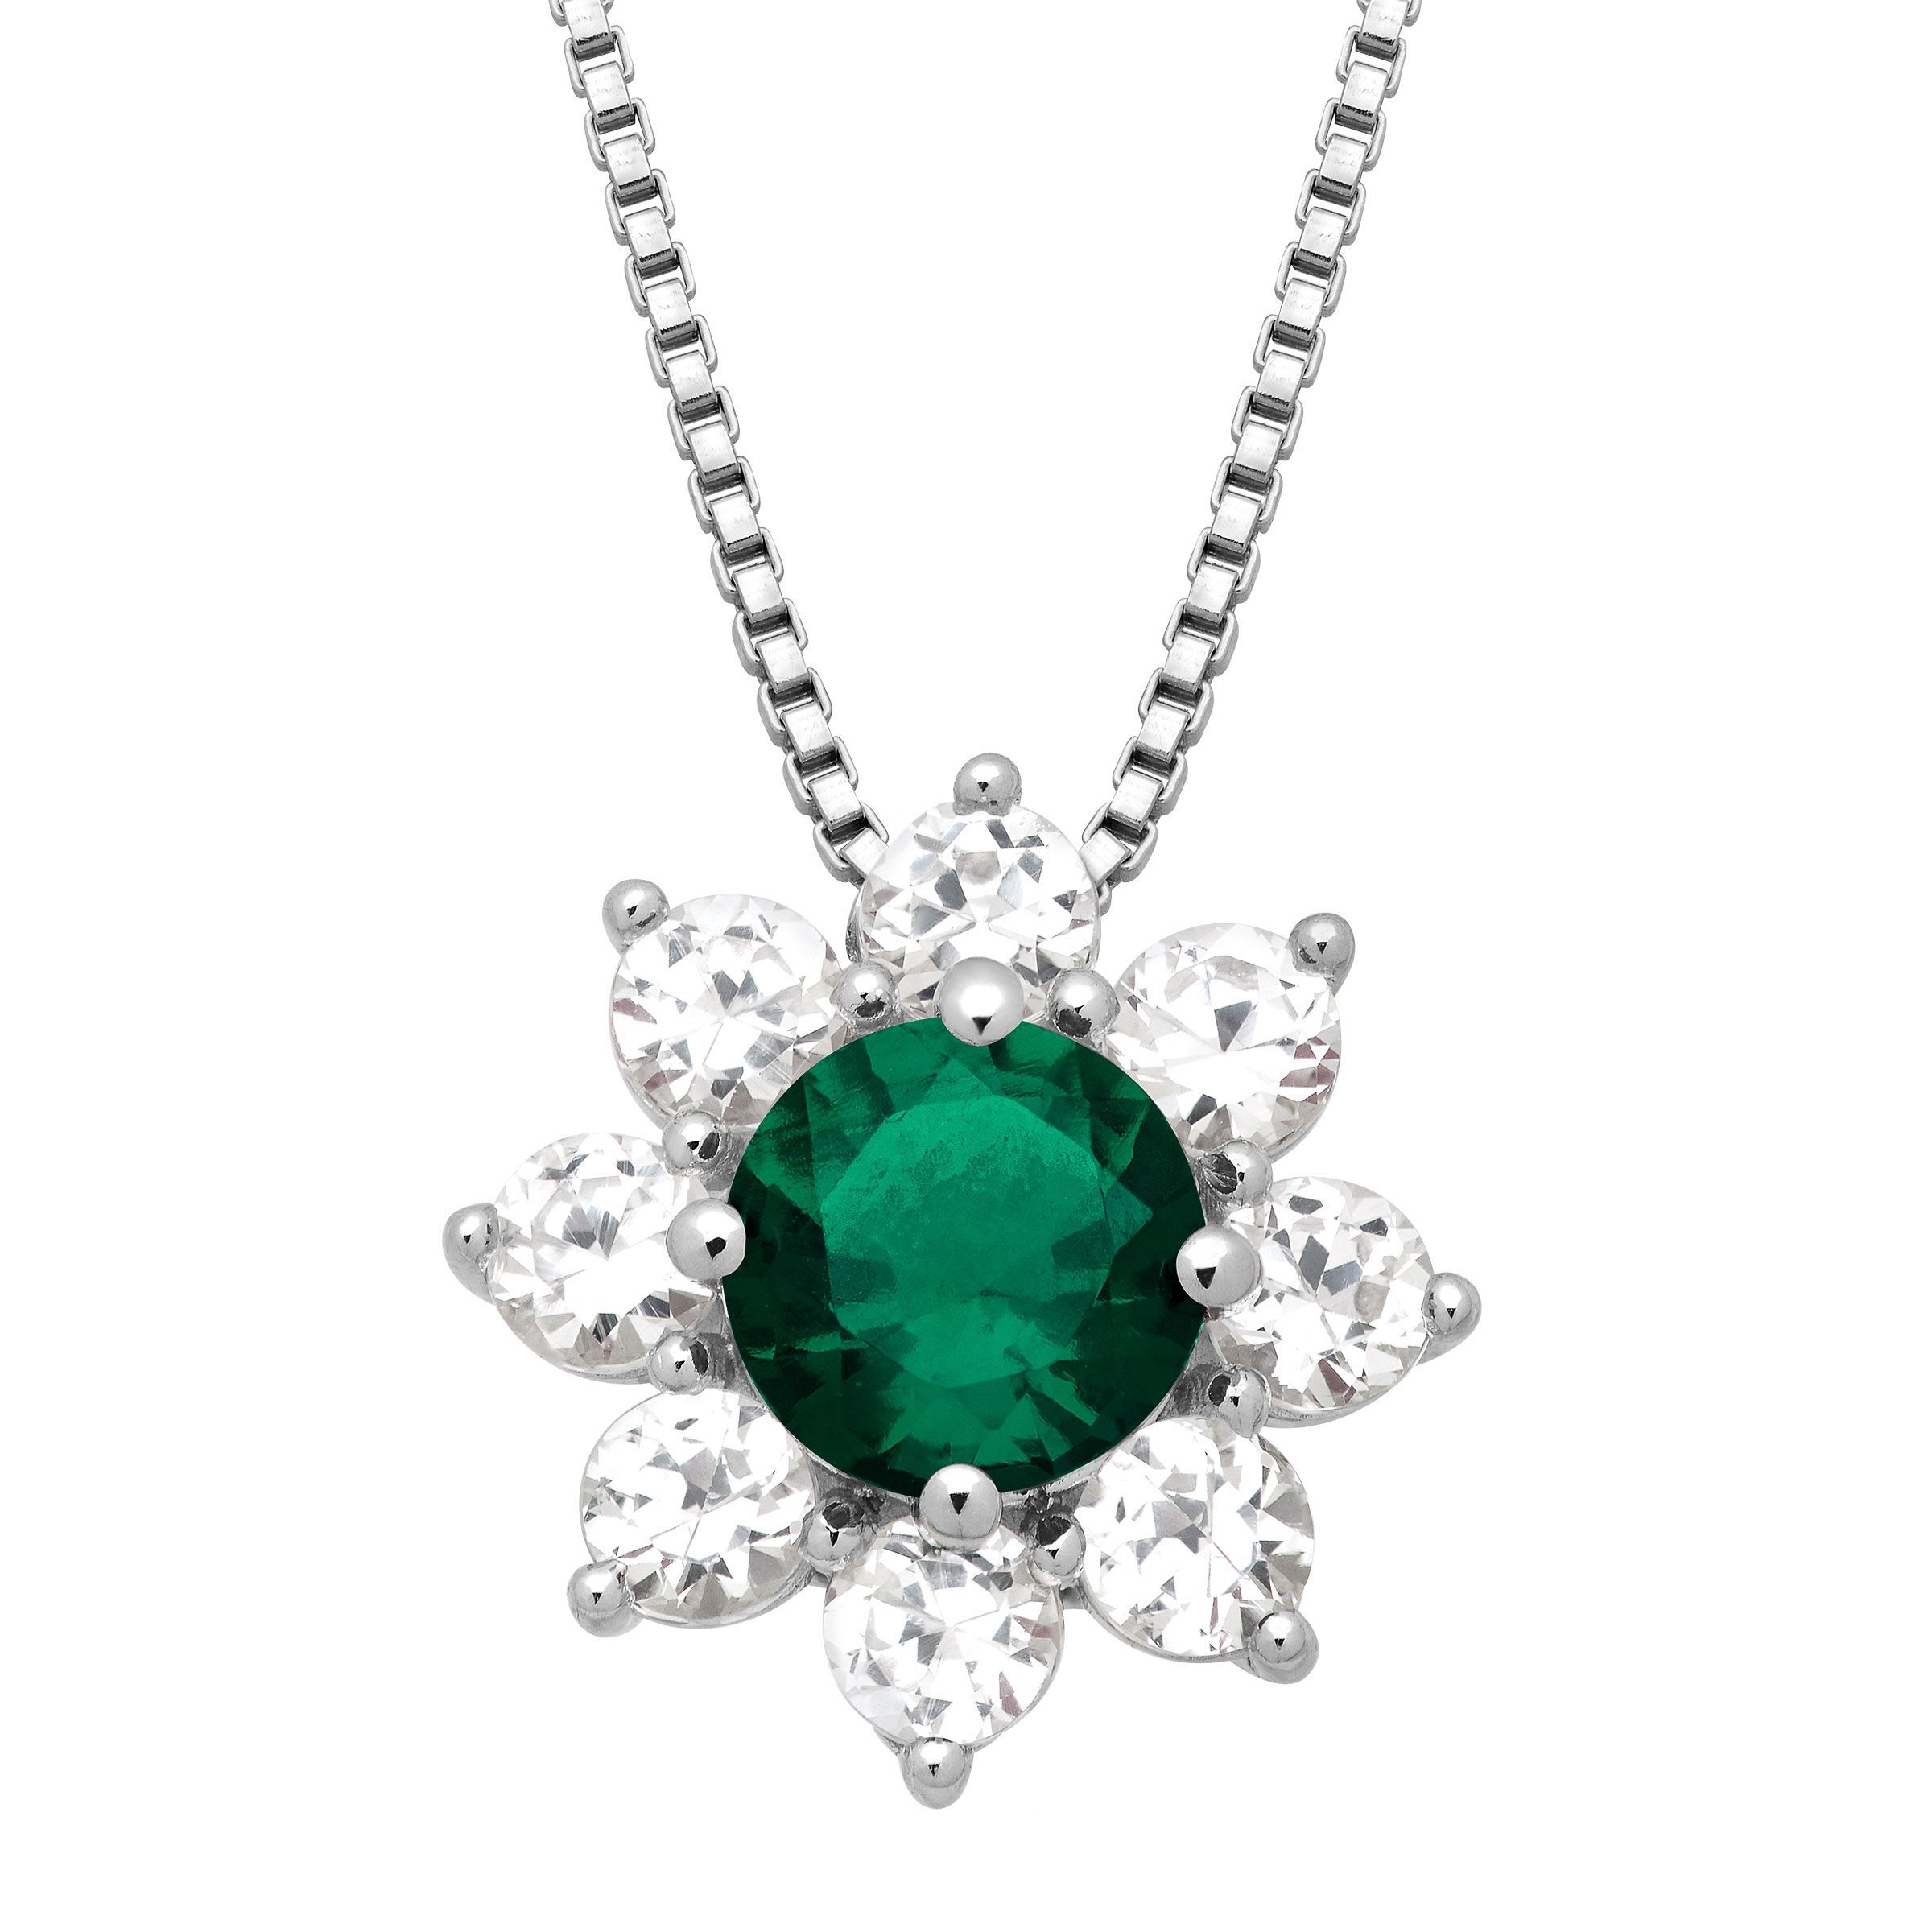 necklace diamonds emerald valla diamond pendant white round gold stone